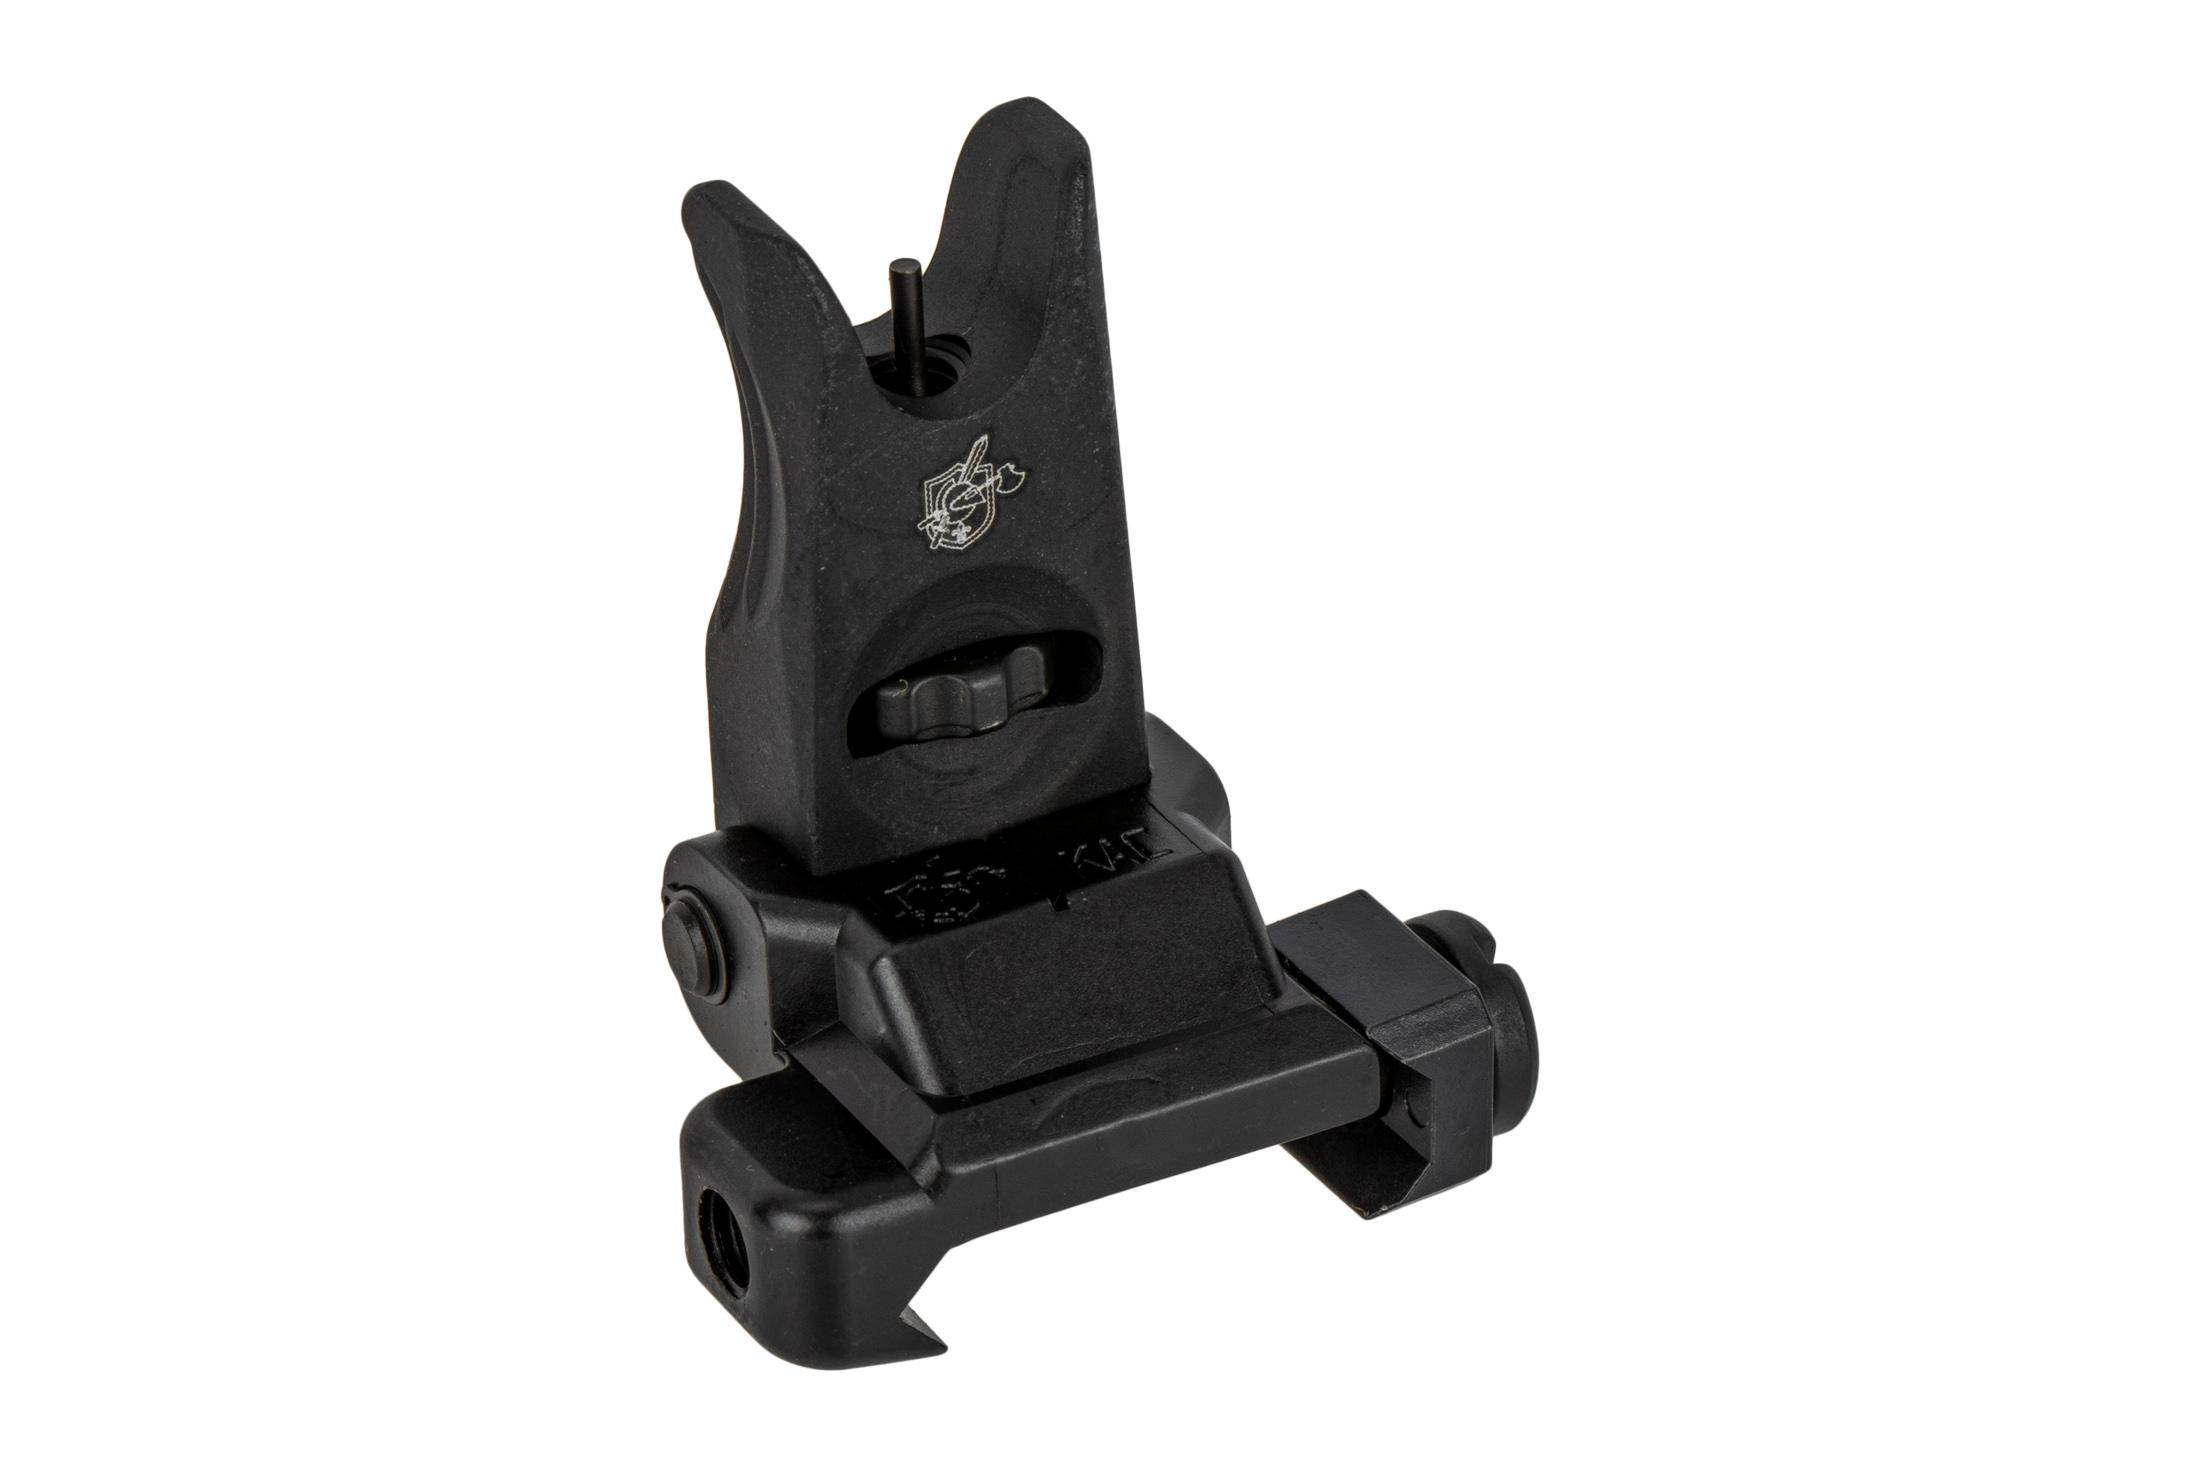 Knights Armament Folding Micro Front Sight is adjustable for elevation